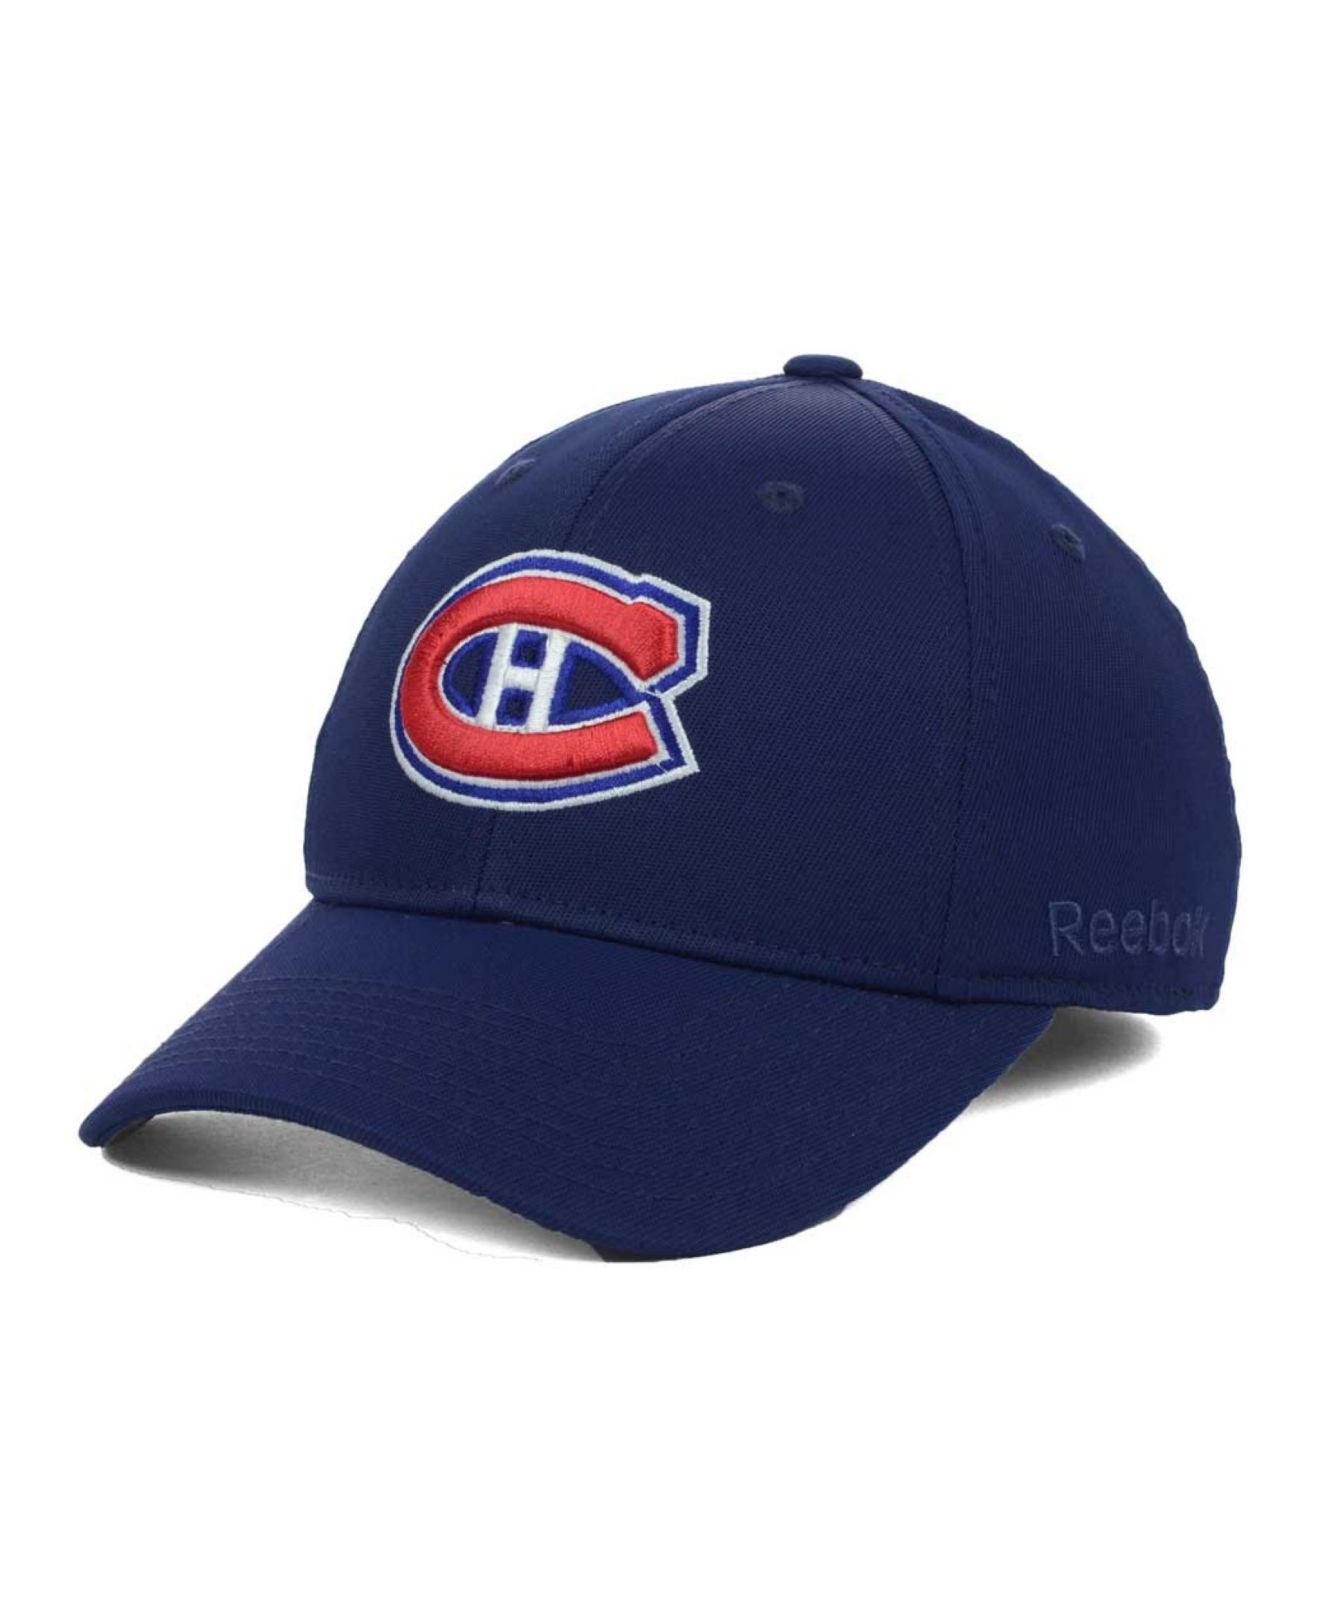 6085ae67a56 Lyst - Reebok Montreal Canadiens Hat Trick Cap in Blue for Men